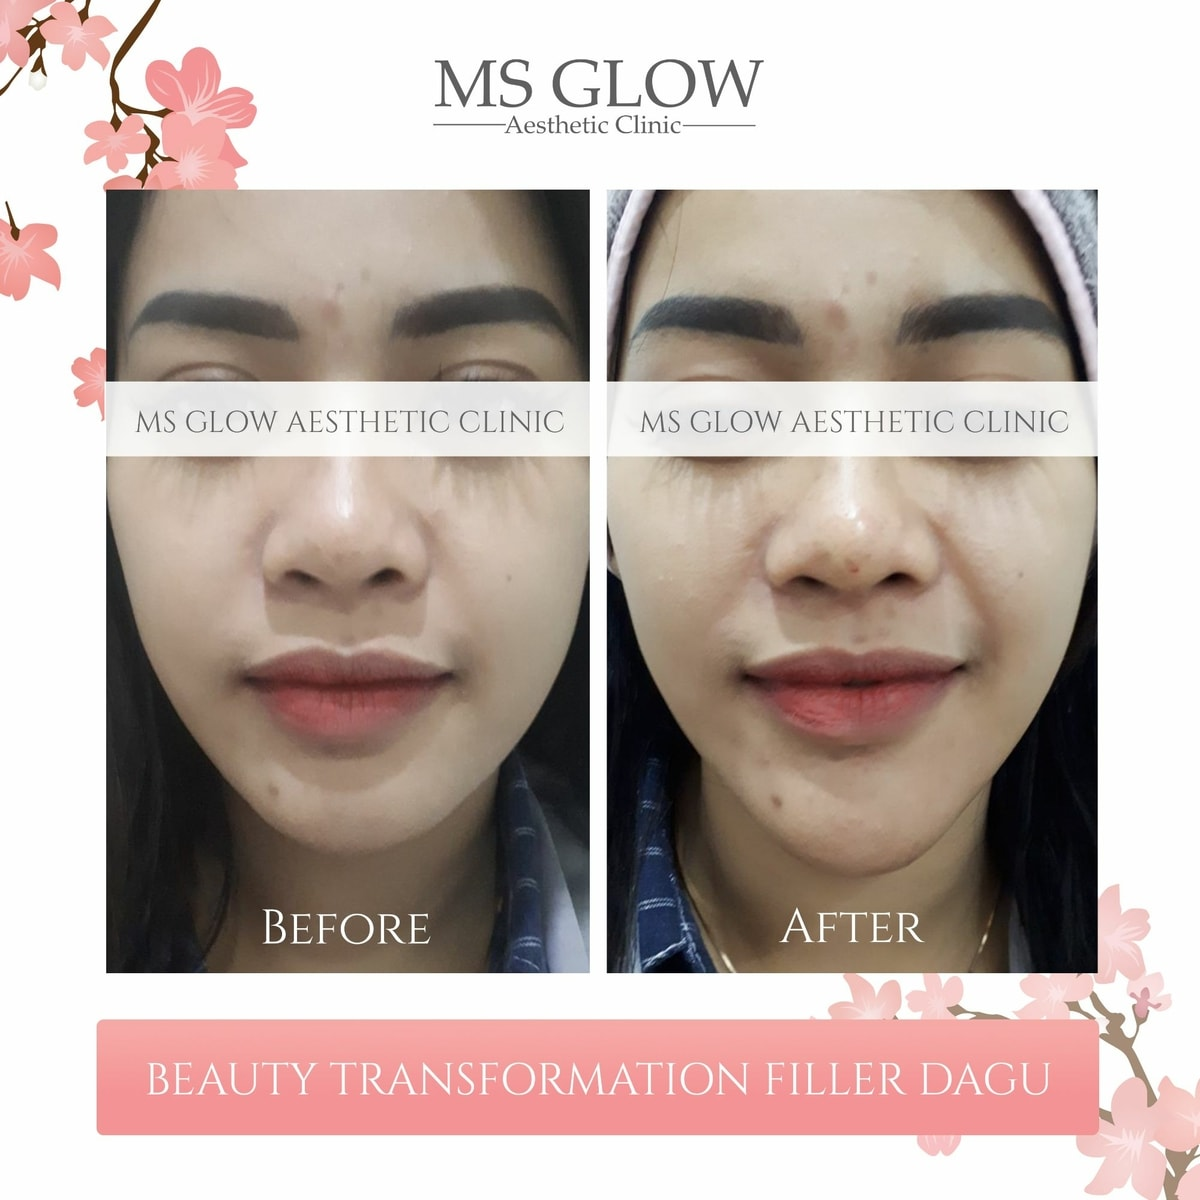 Beauty Transformation Filler Dagu Ms Glow